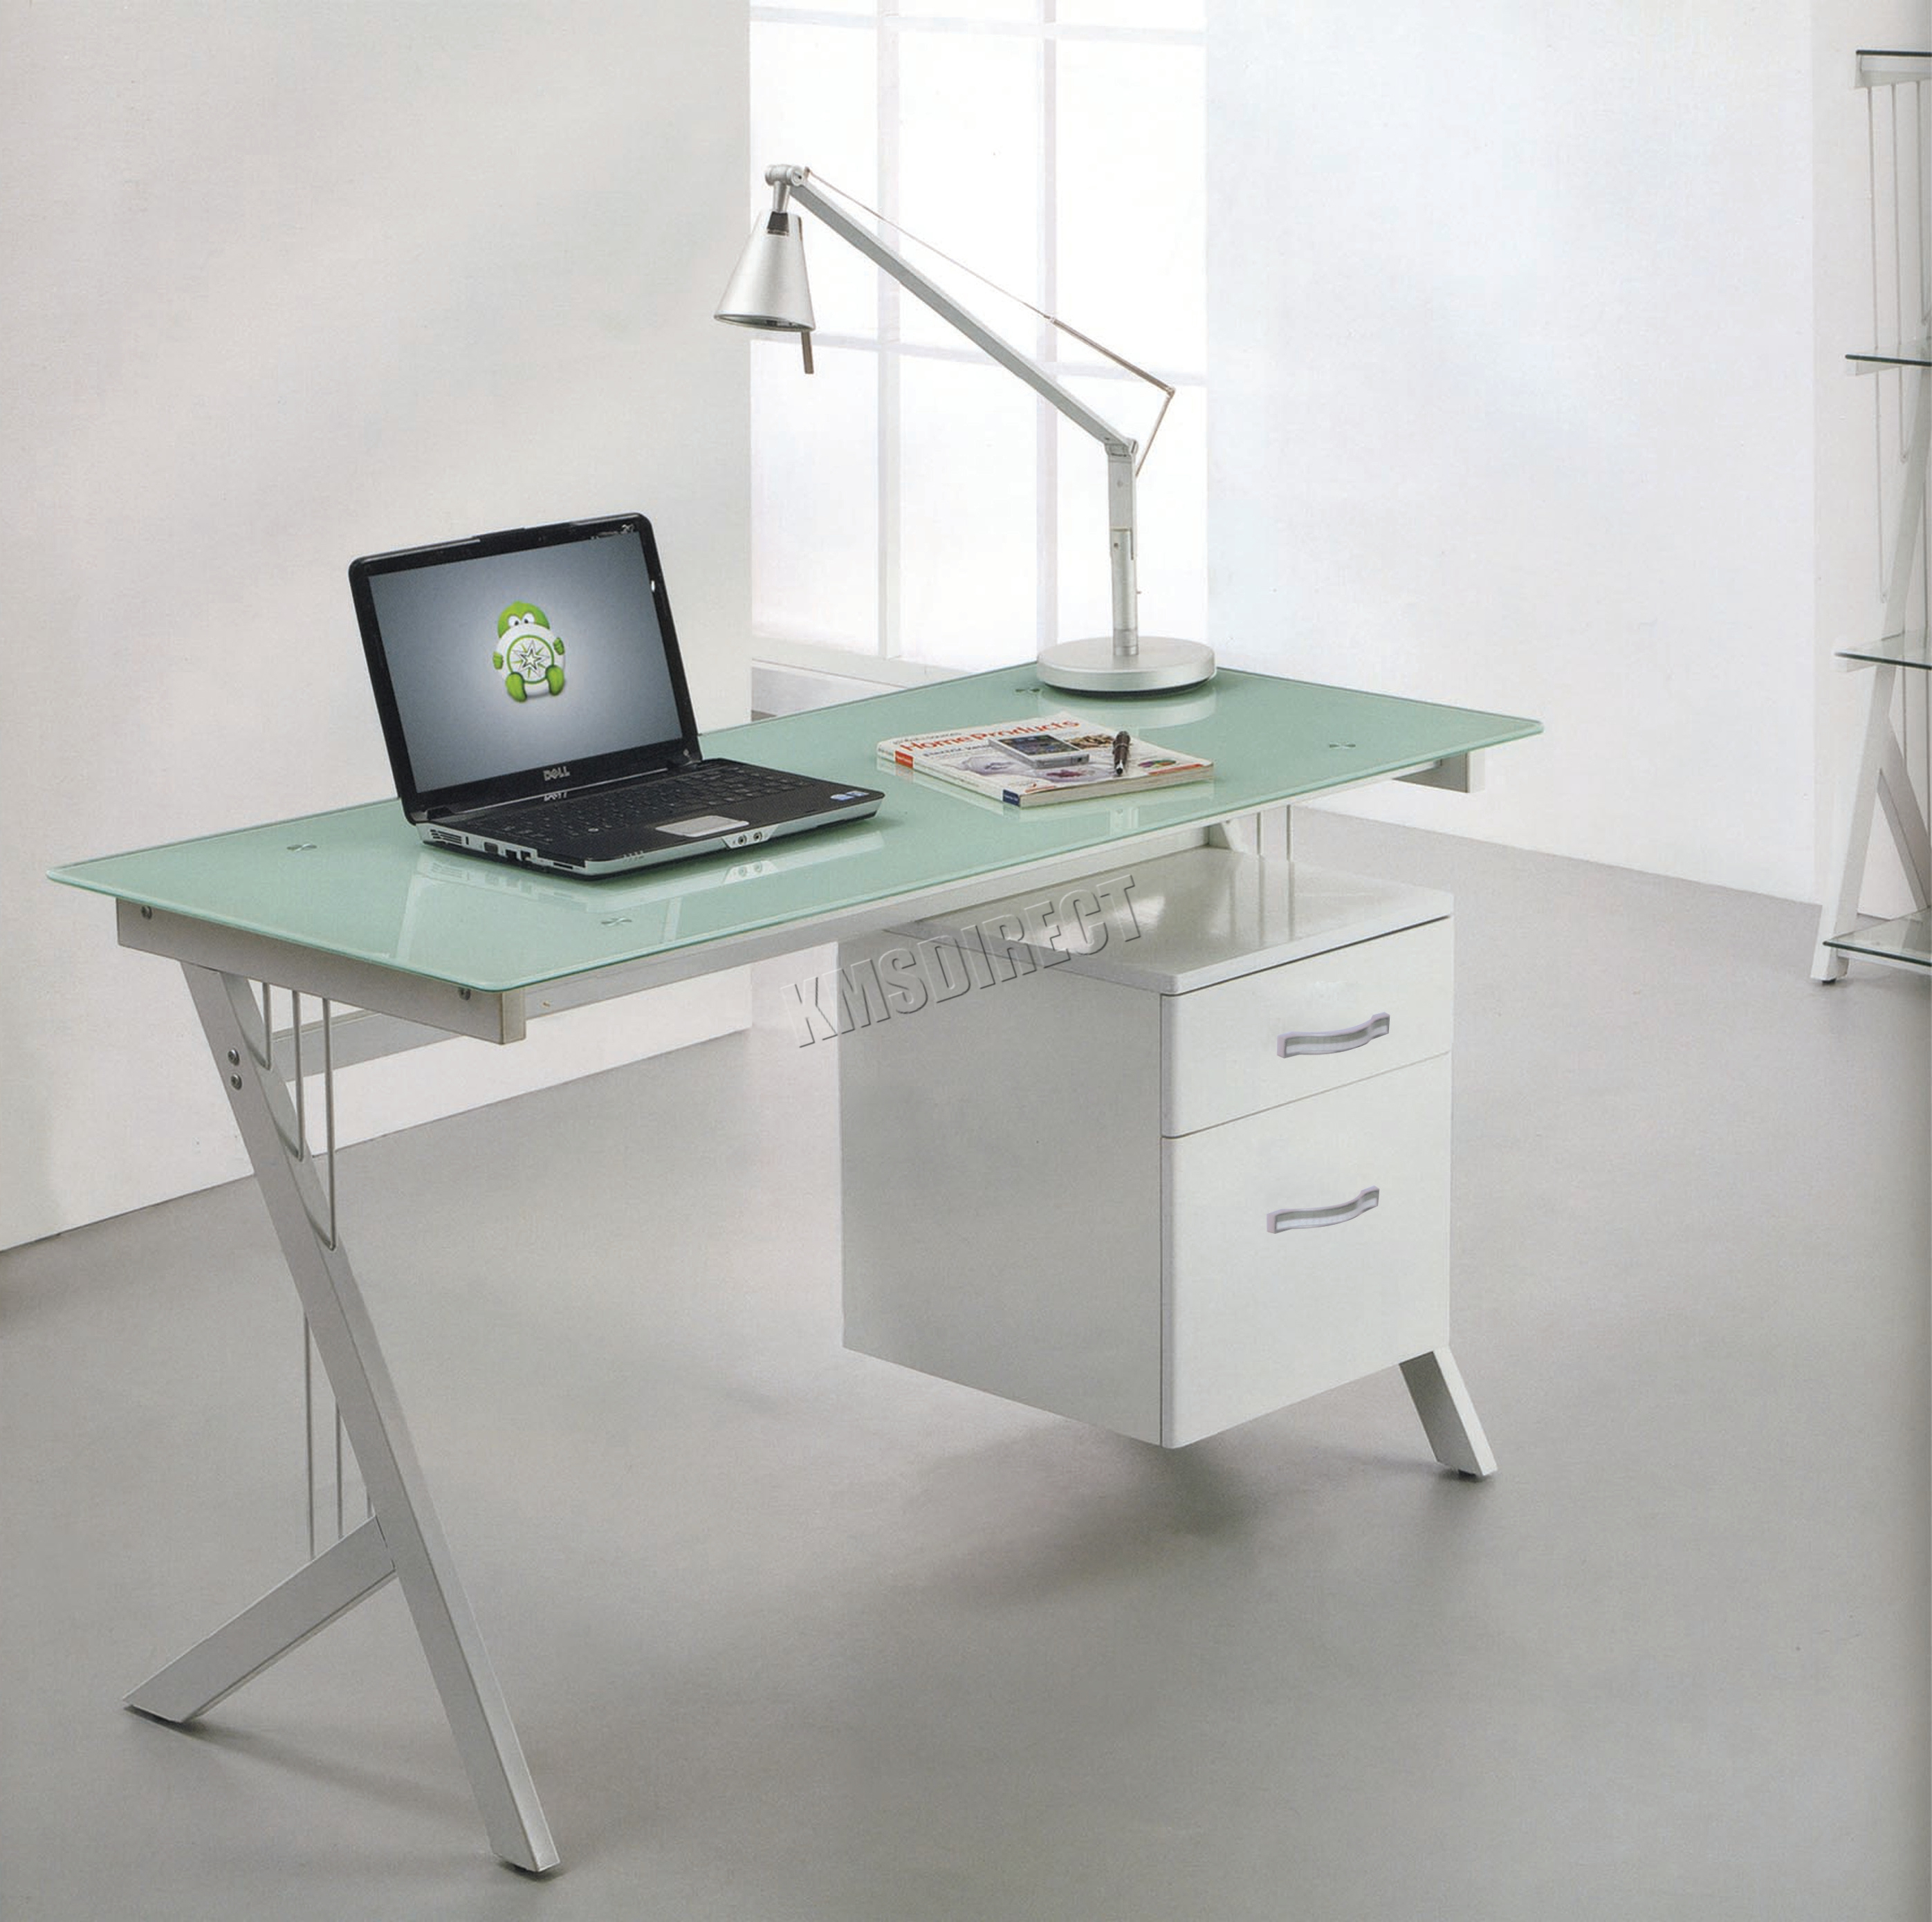 Sentinel foxhunter computer desk pc table with glass top 2 drawers home office study cd10